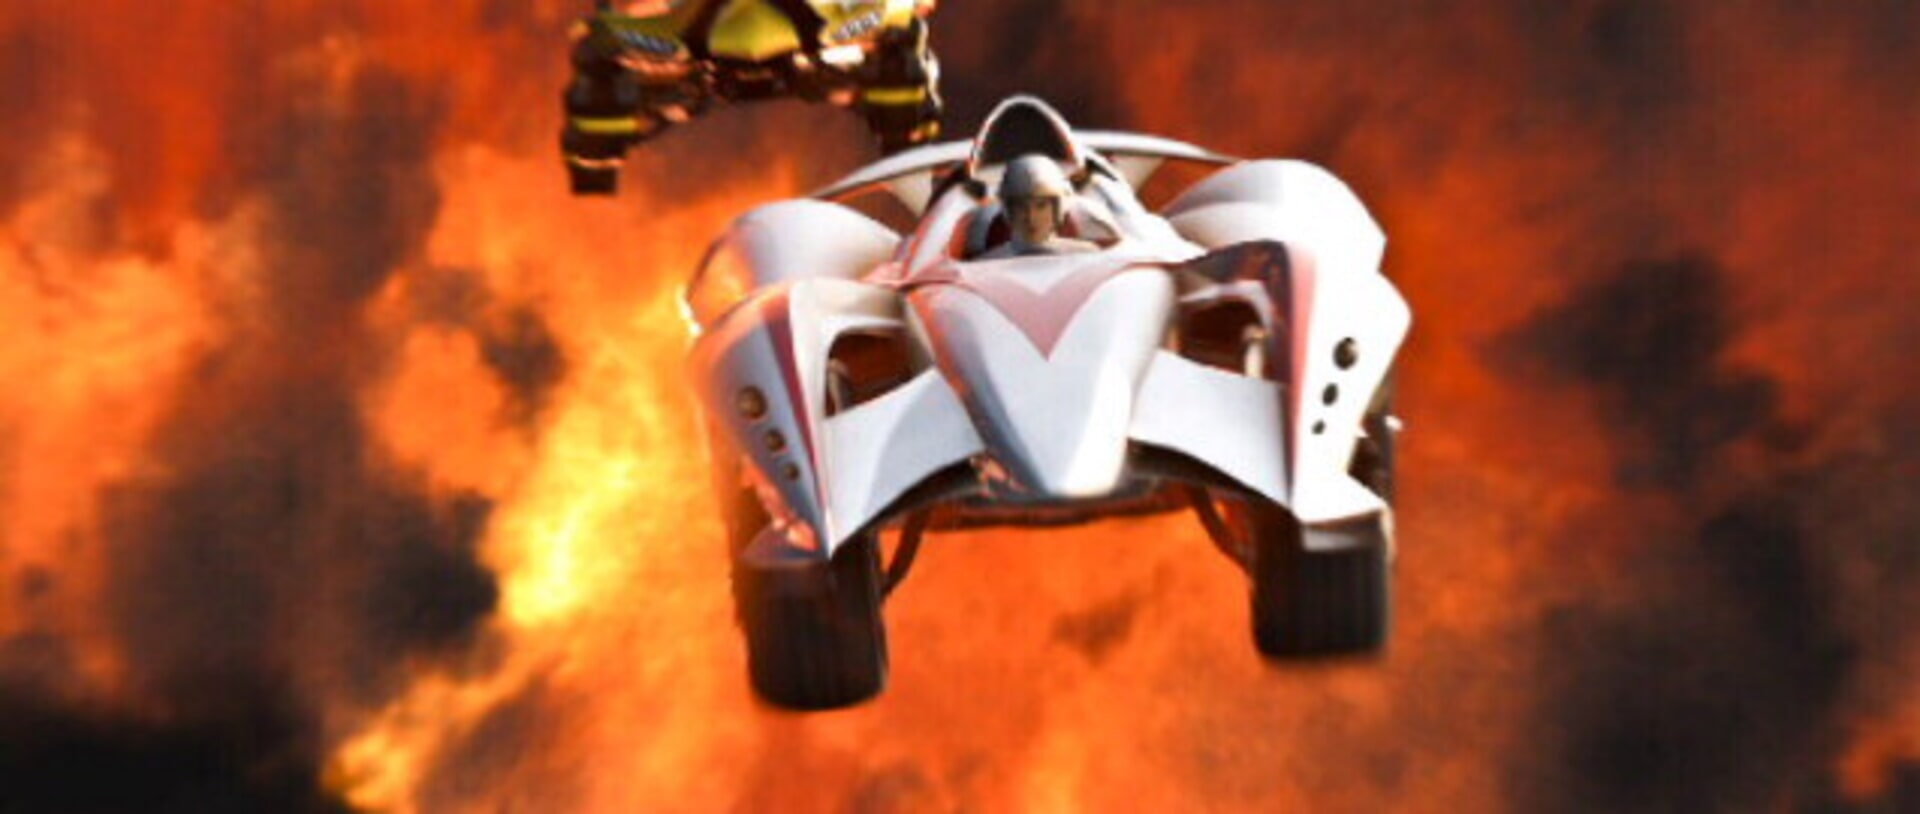 Speed Racer - Image 58